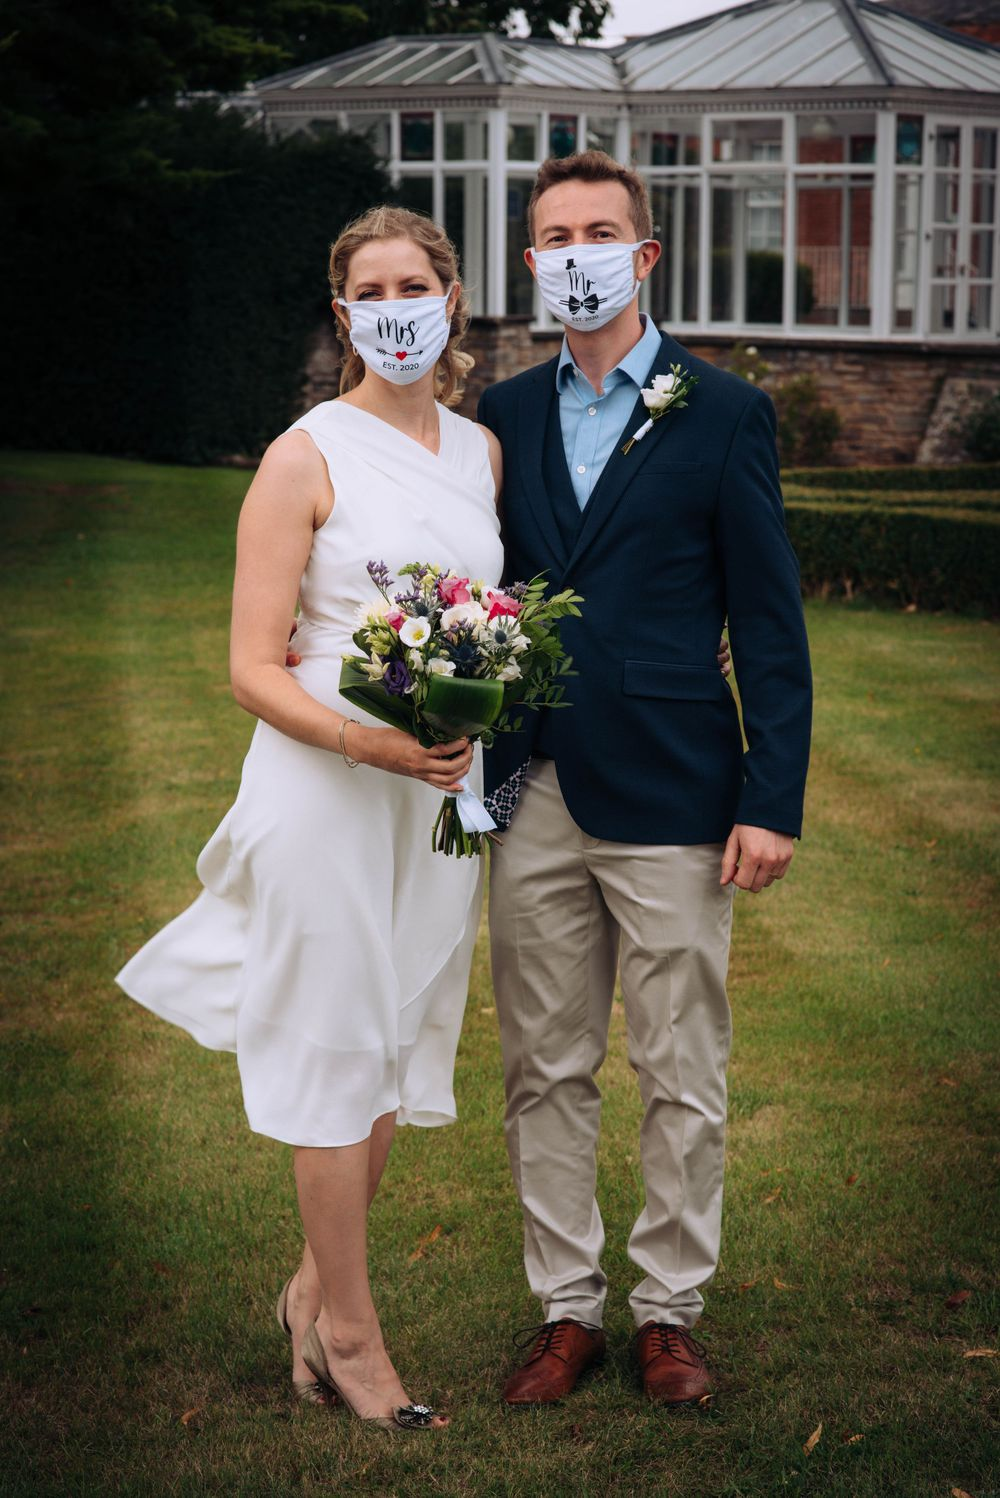 Pukrup Hall wedding by Zara Davis Photography, Gloucestershire bride and groom wearing masks outside